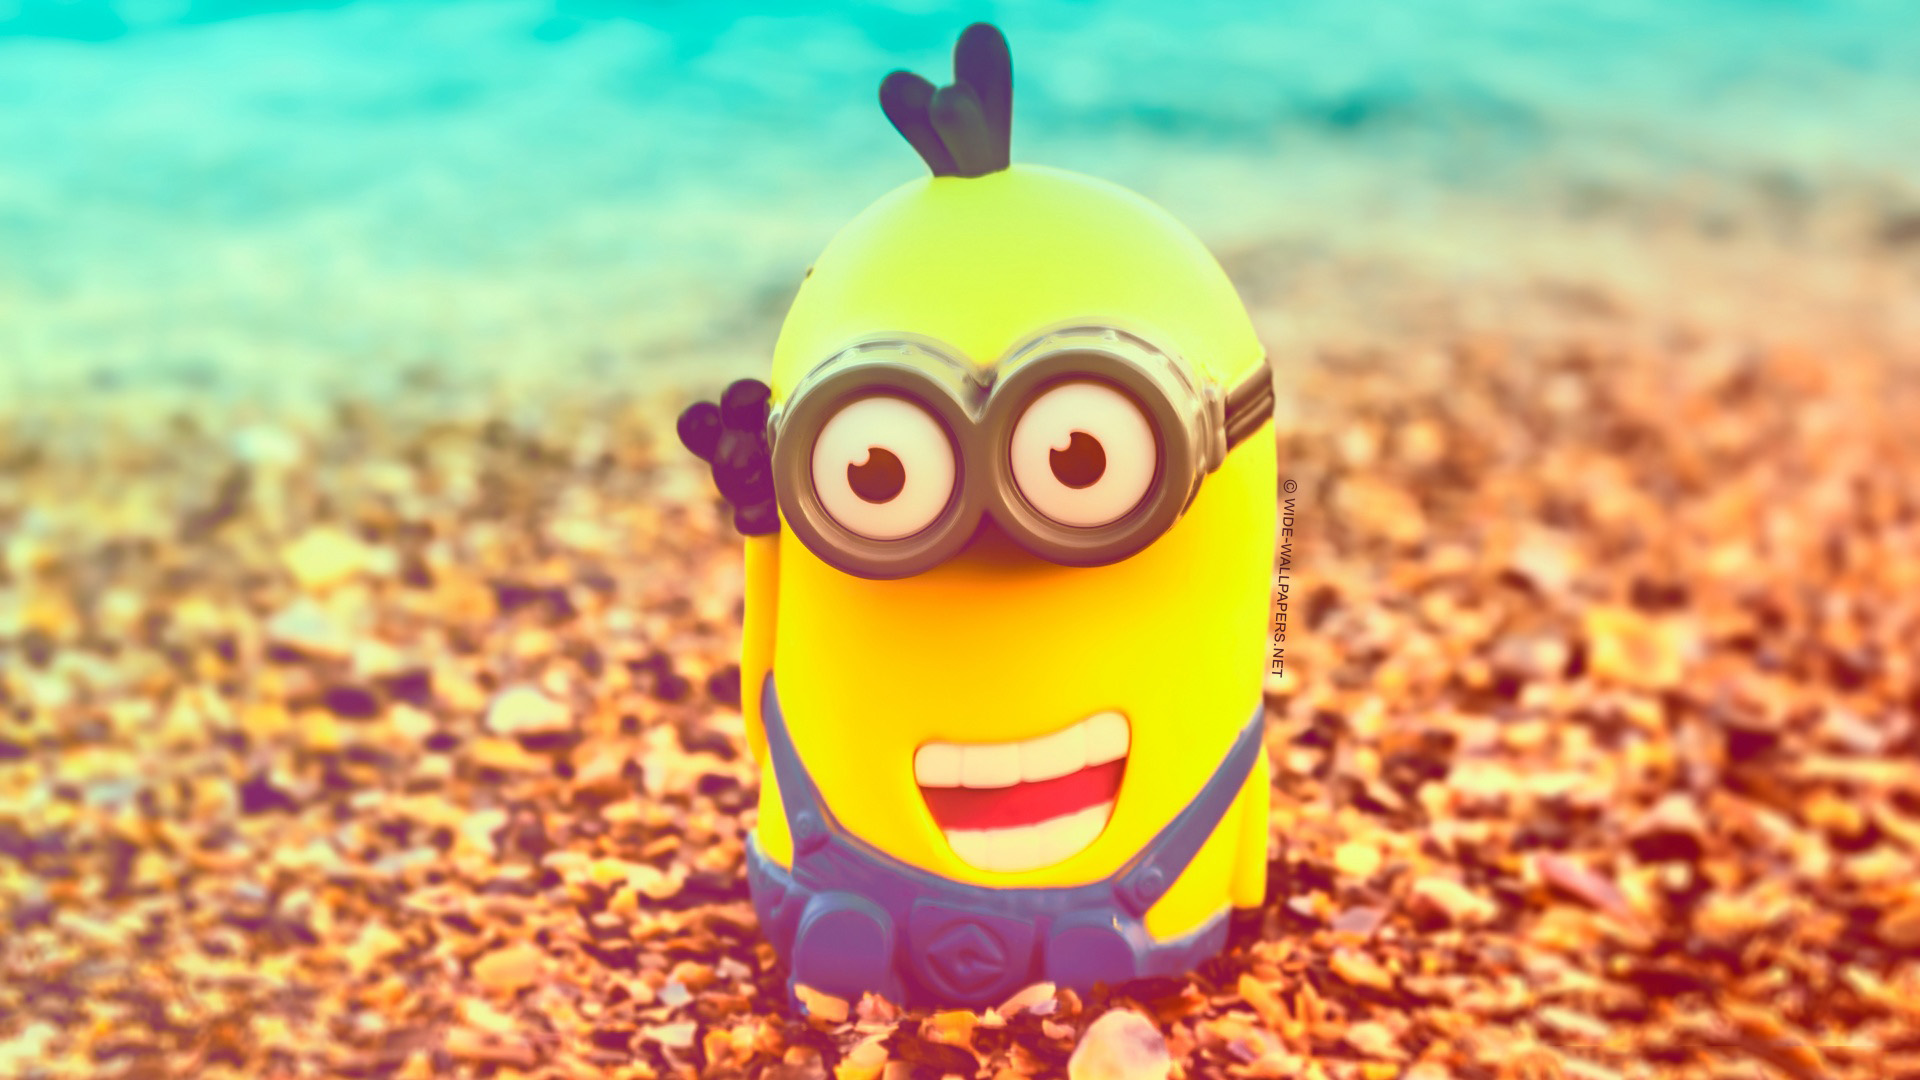 Most Inspiring Wallpaper Cartoon Smile - minion-with-a-smile-on-face-anime-wallpaper-1920x1080  Collection_934267   .jpg